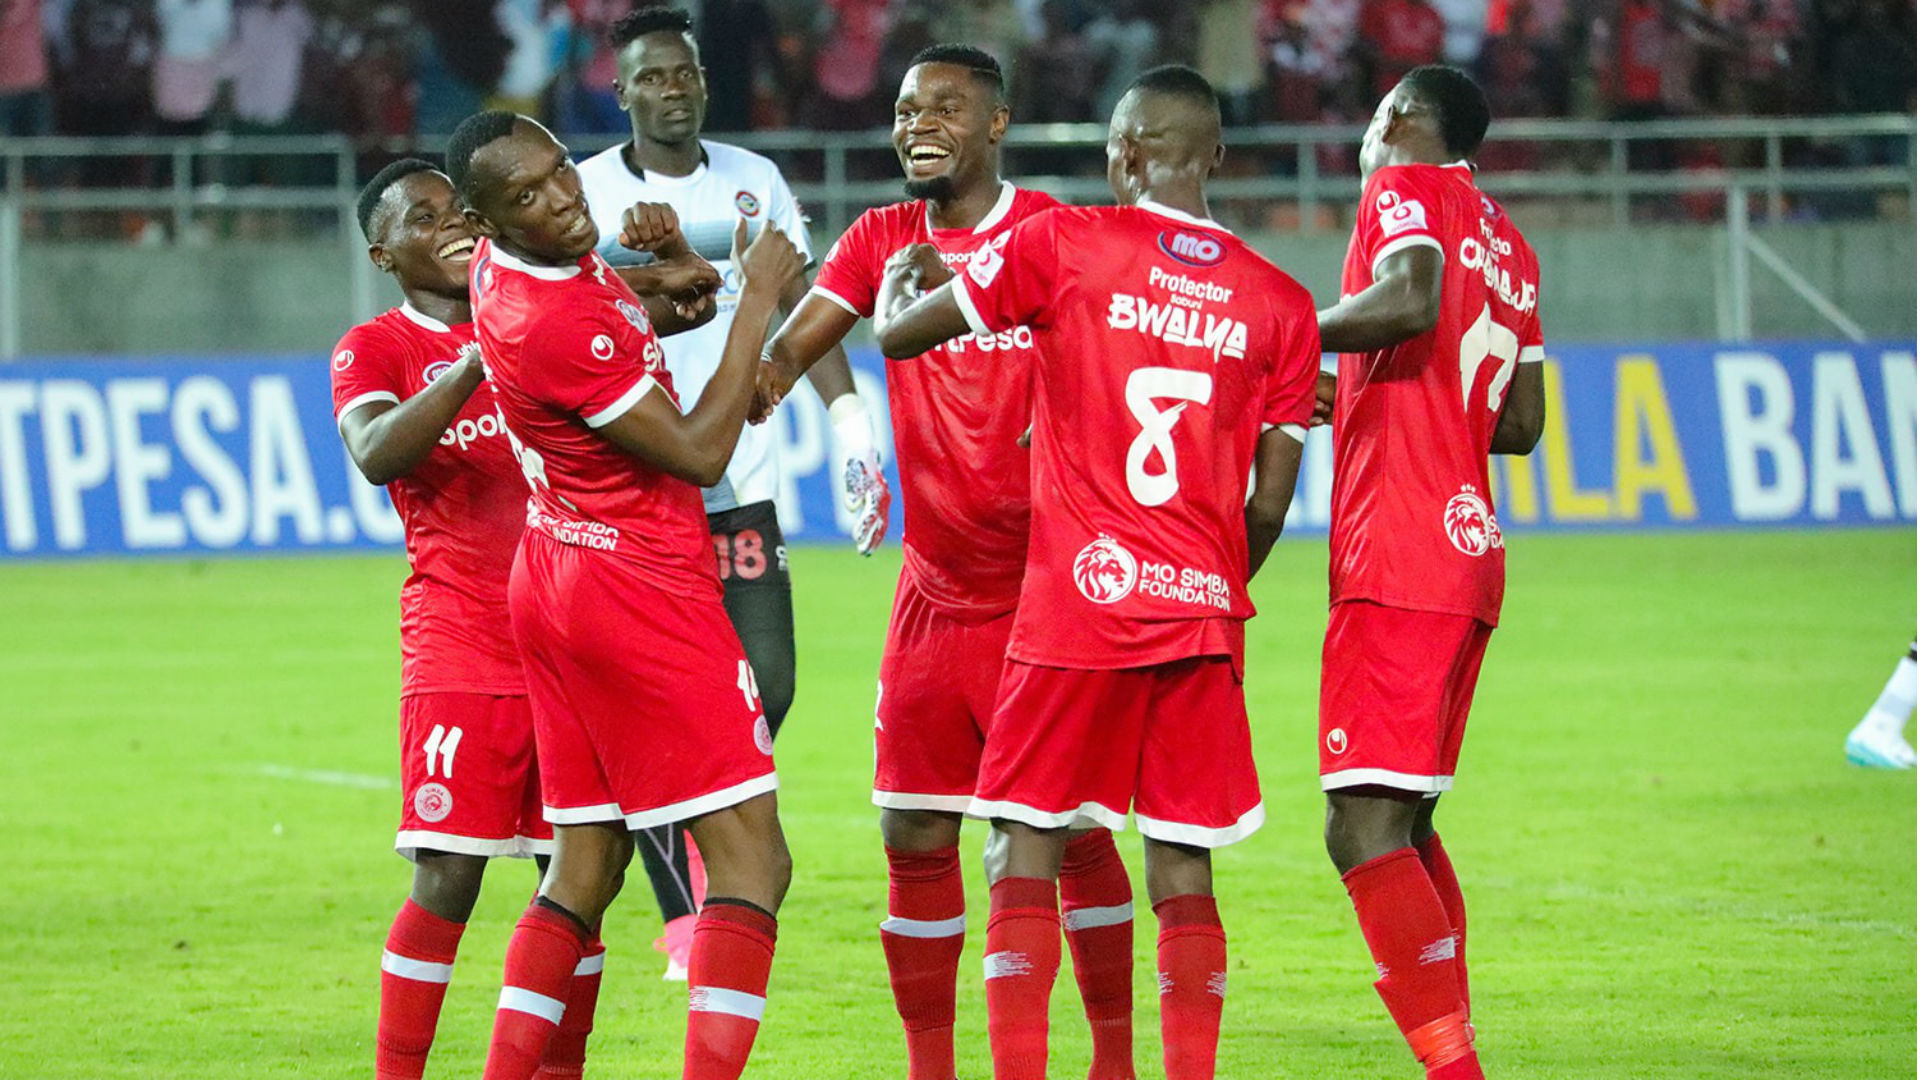 Vandenbroeck: With Kagere & Mugalu, Simba SC can beat any league team